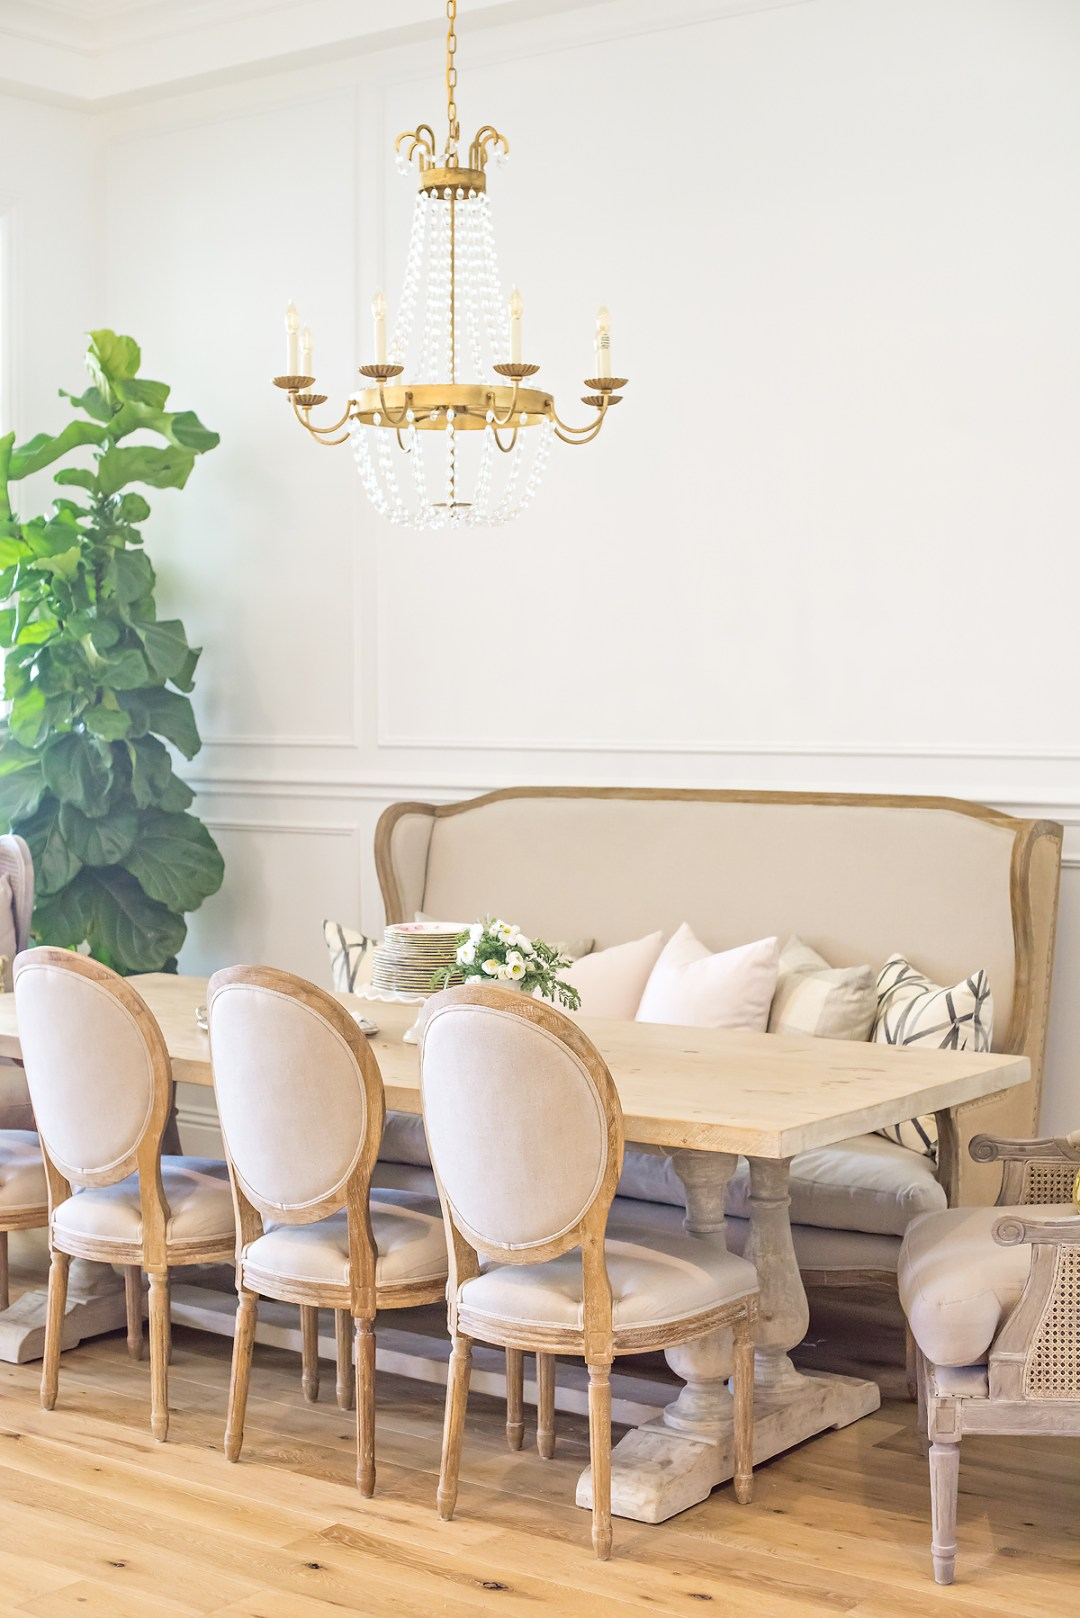 maggie-holmes-neutral-dining-room-makeover-40